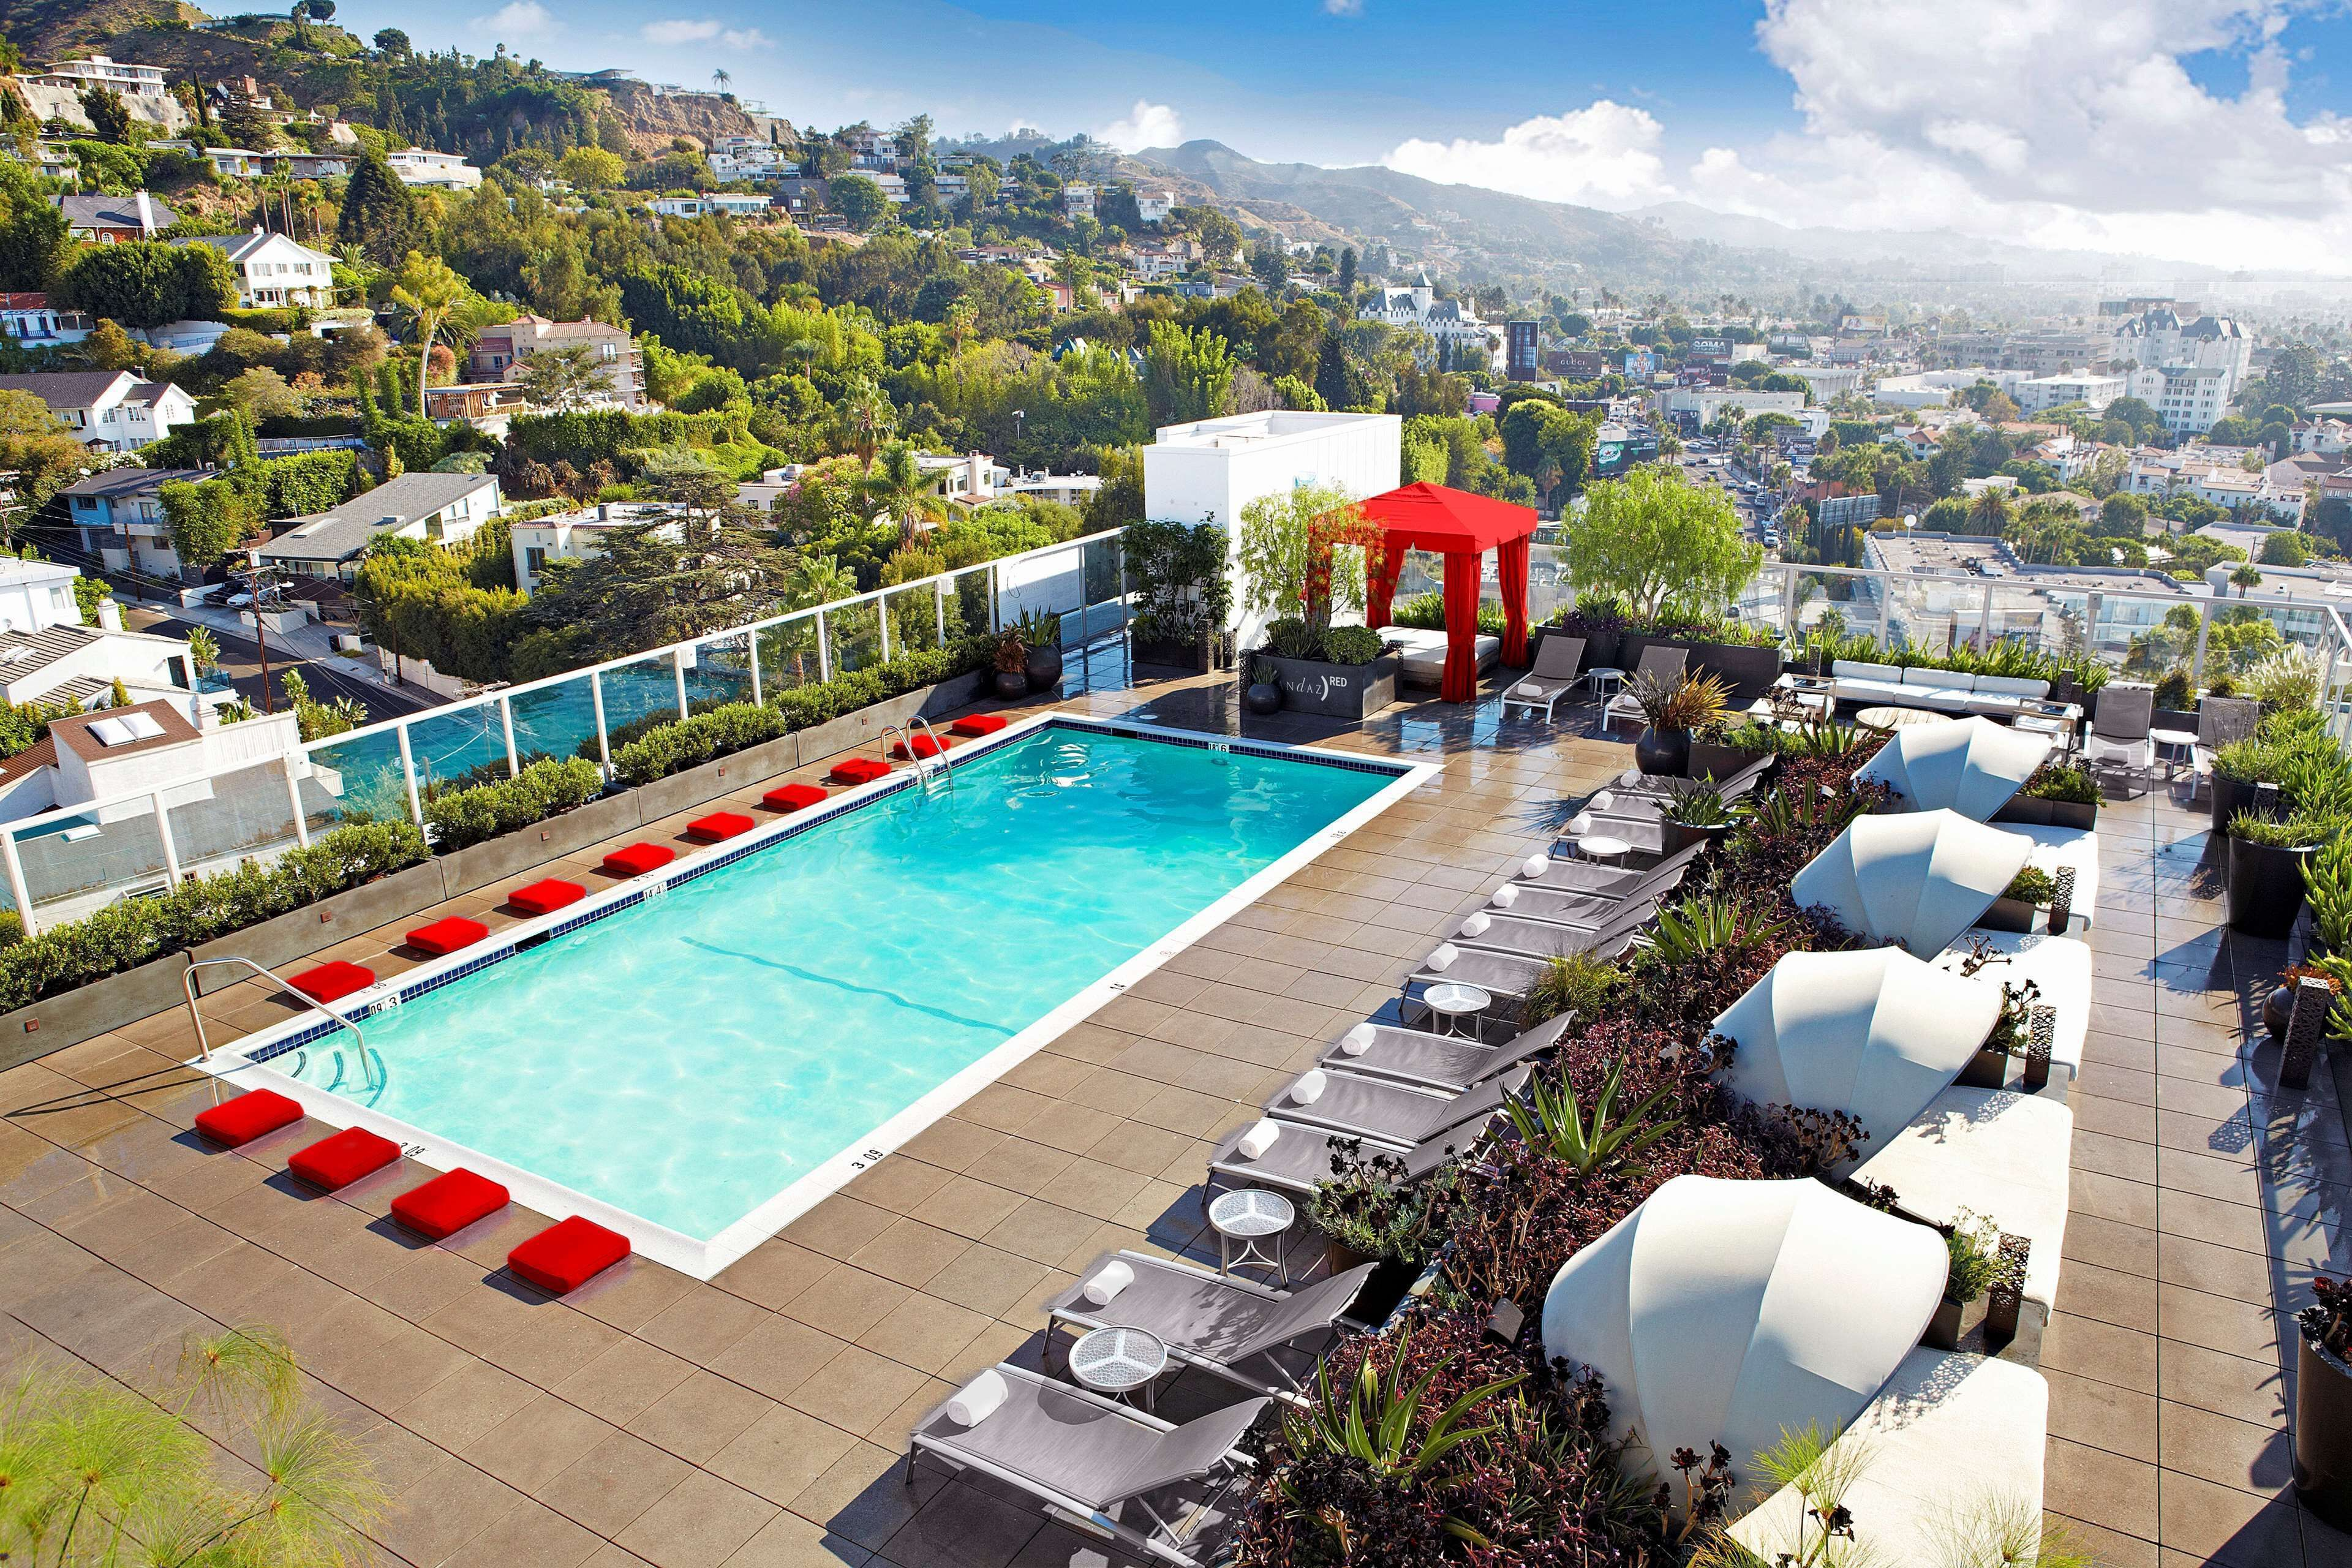 Live Los Angeles like a star at the rooftop pool at Andaz West Hollywood, with its views of the Hollywood Hills and Sunset Strip